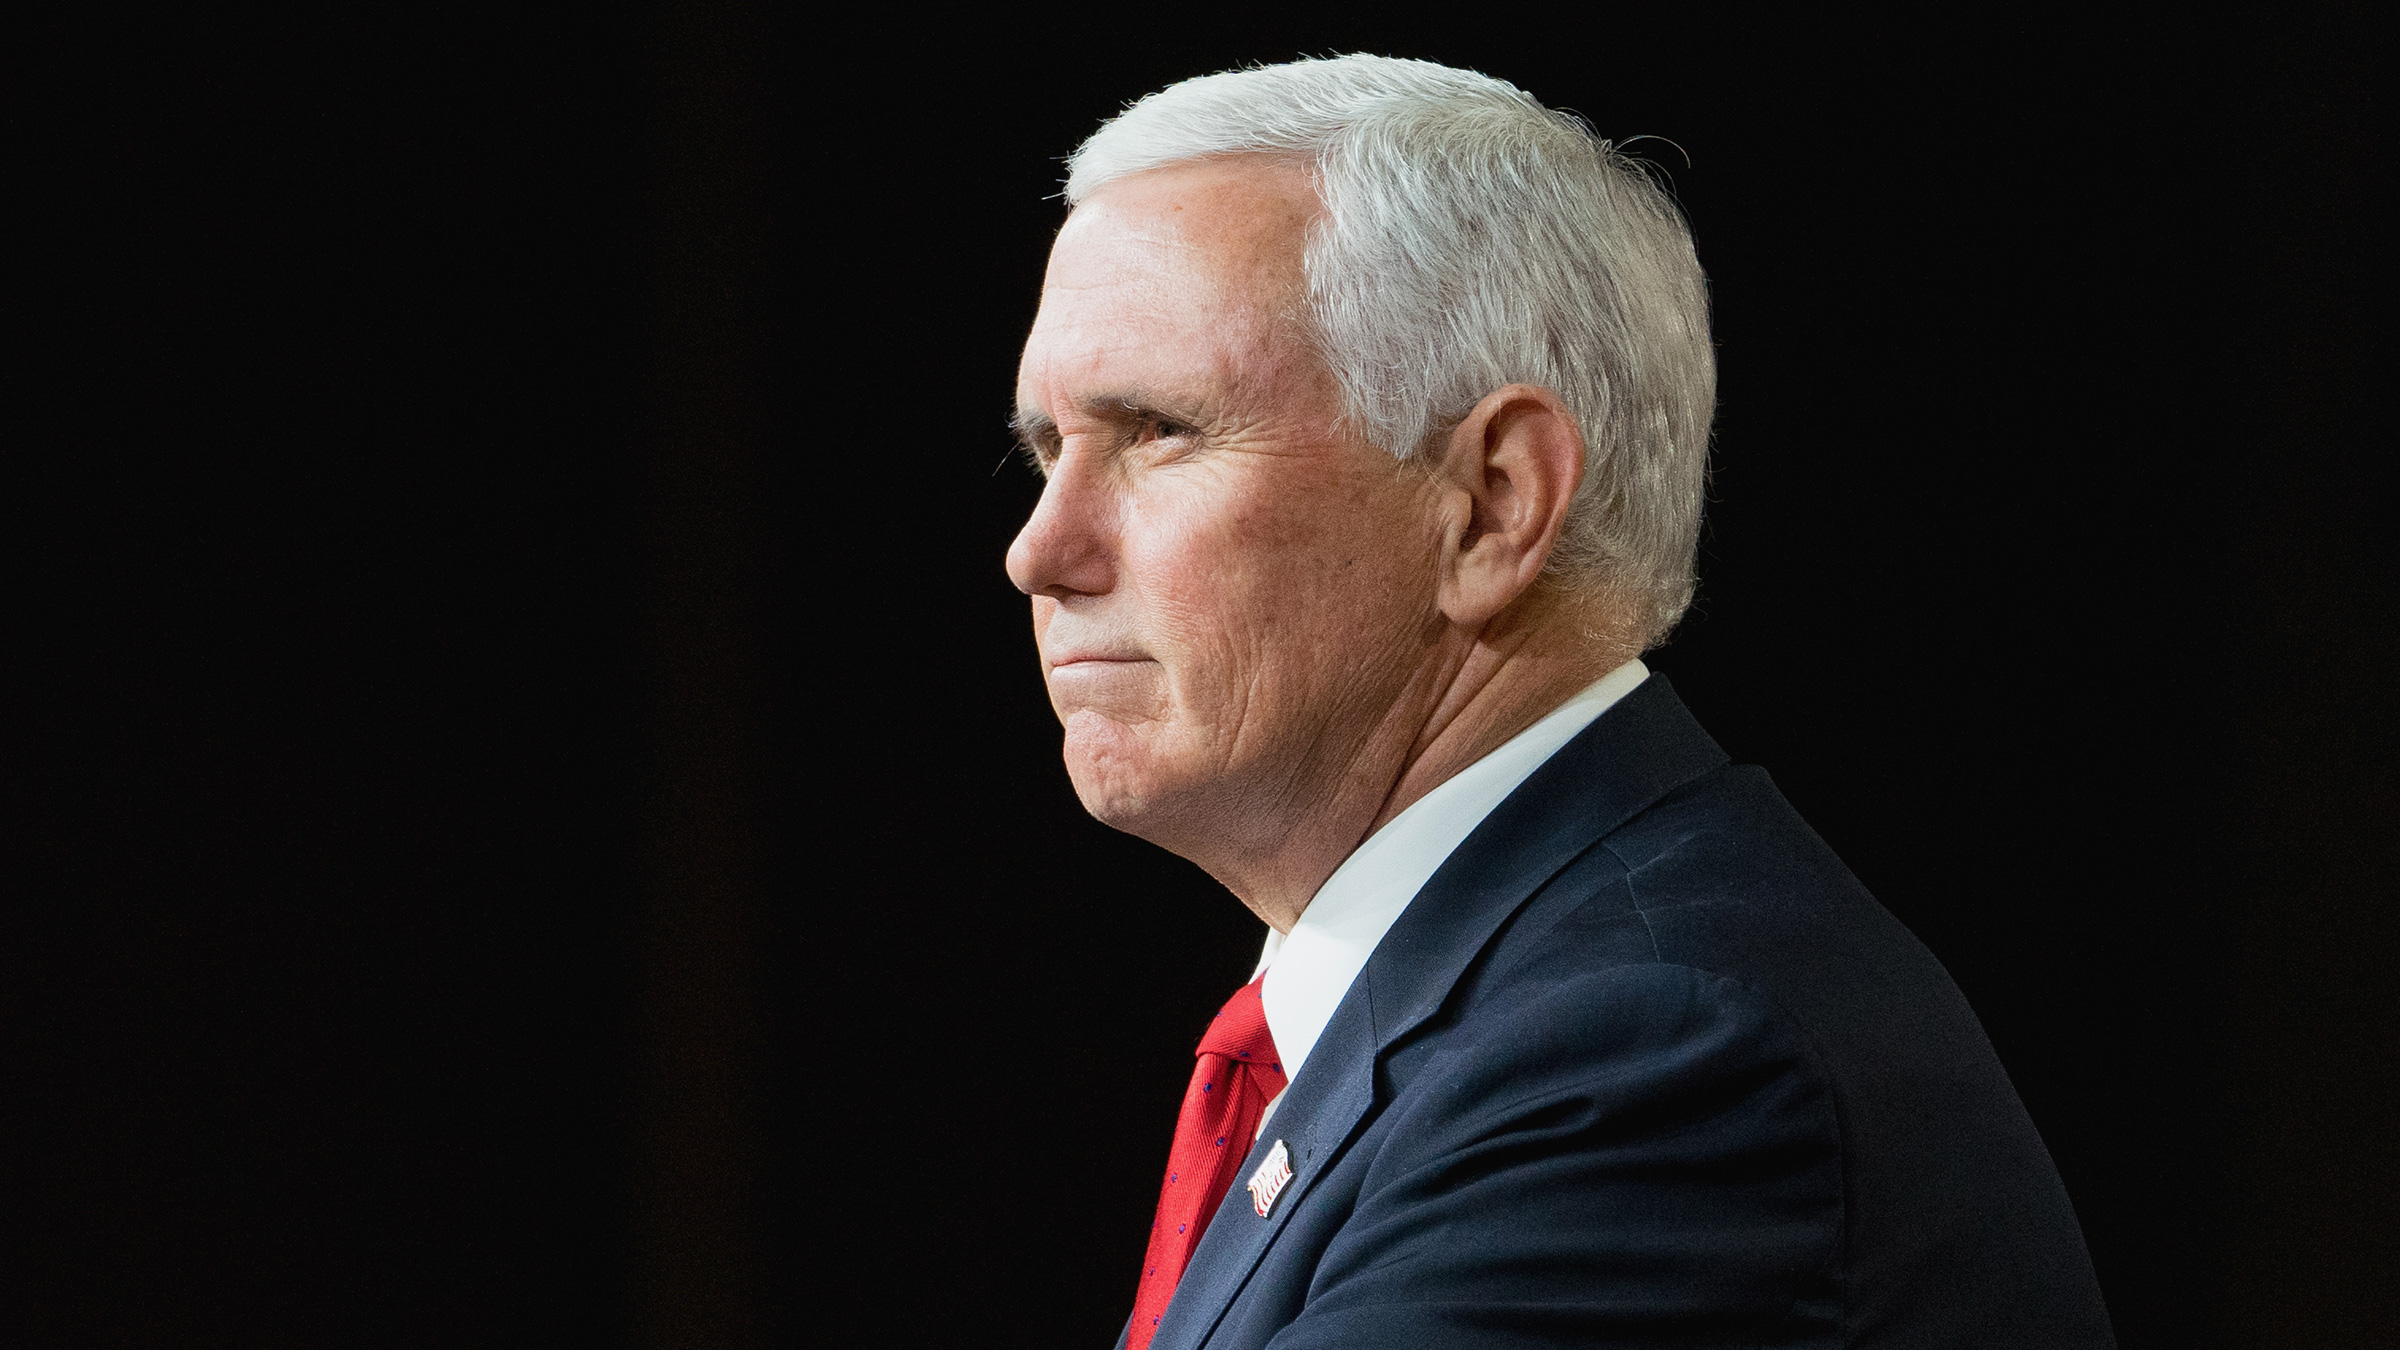 MILNER, GA - JANUARY 04: U.S. Vice President Mike Pence speaks during a visit to Rock Springs Church to campaign for GOP Senate candidates on January 4, 2021 in Milner, Georgia. Tomorrow is the final day for Georgia voters to vote for U.S. Senators Republican incumbents David Perdue and Kelly Loeffler or Democratic Candidates John Ossoff and Raphael Warnock. (Photo by Megan Varner/Getty Images)